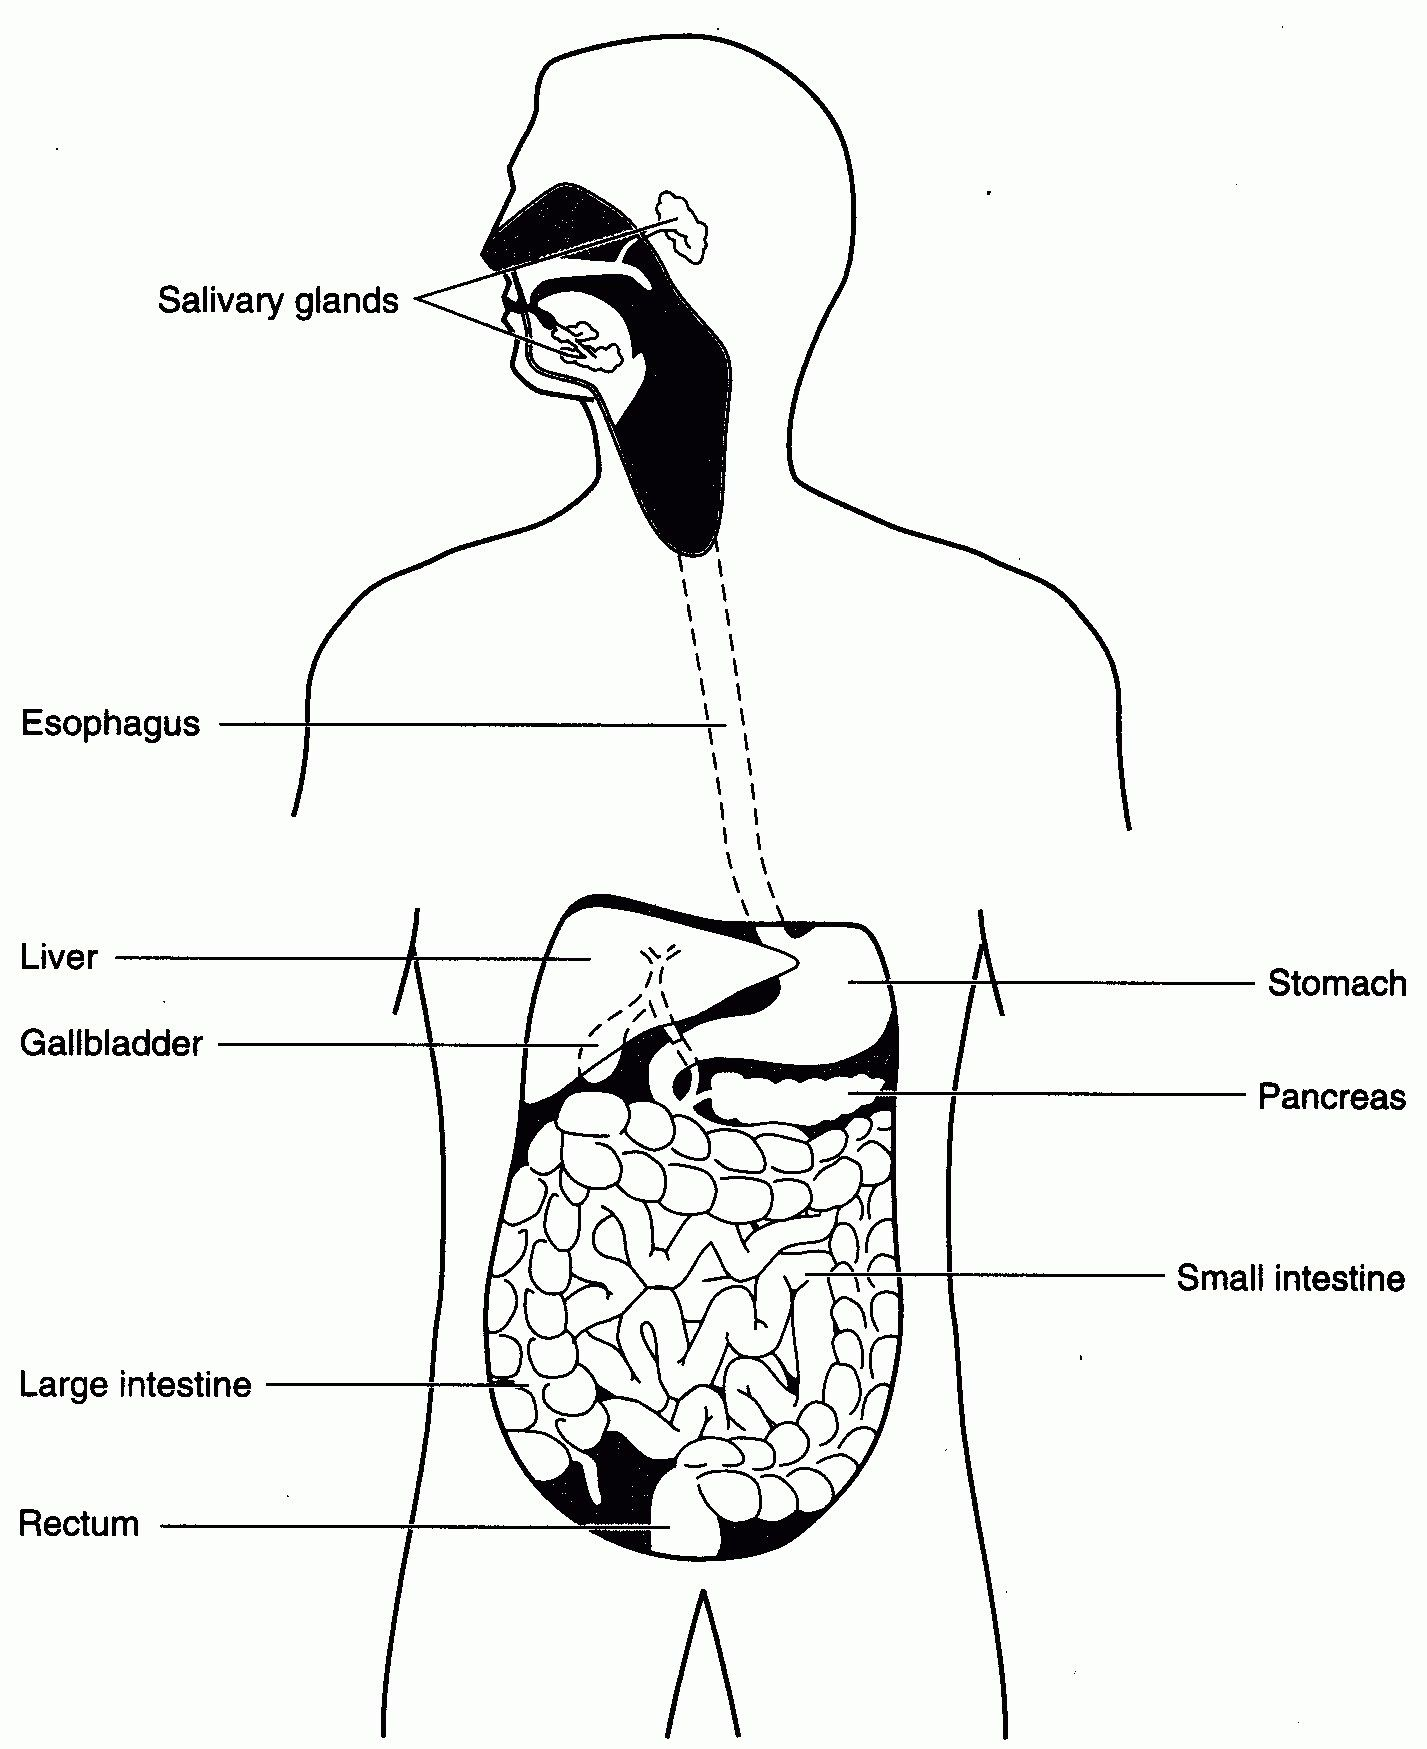 Simple Digestive System Diagram With Images